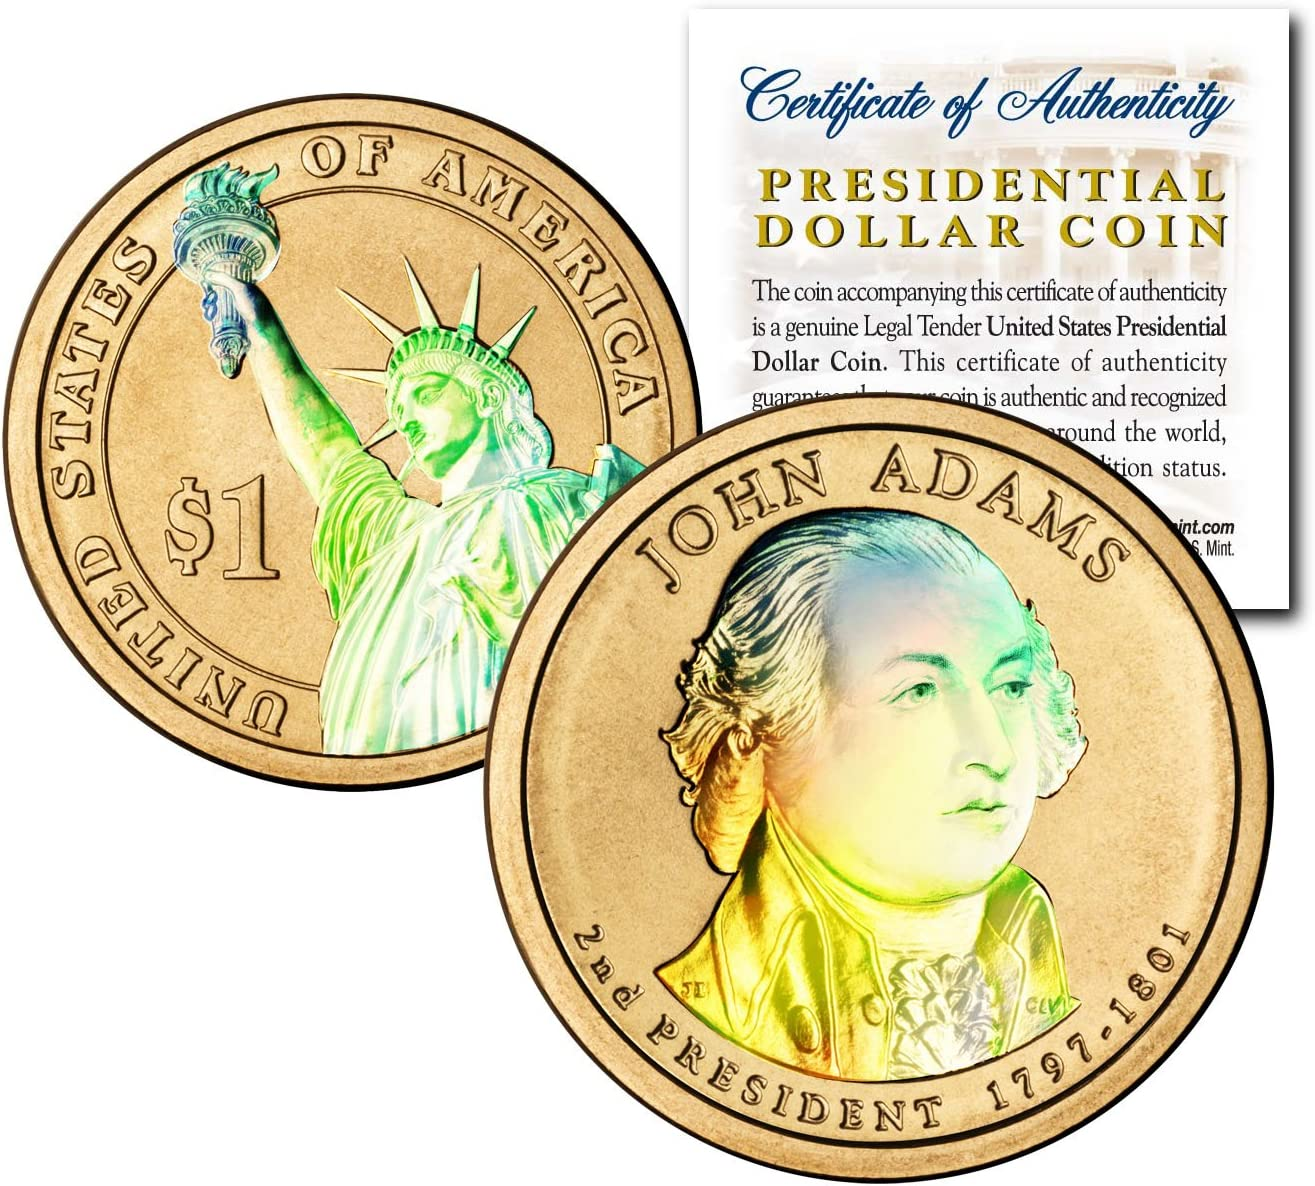 REVERSE SIDE OF A PRESIDENTIAL DOLLAR COLORIZED STATUE OF LIBERTY